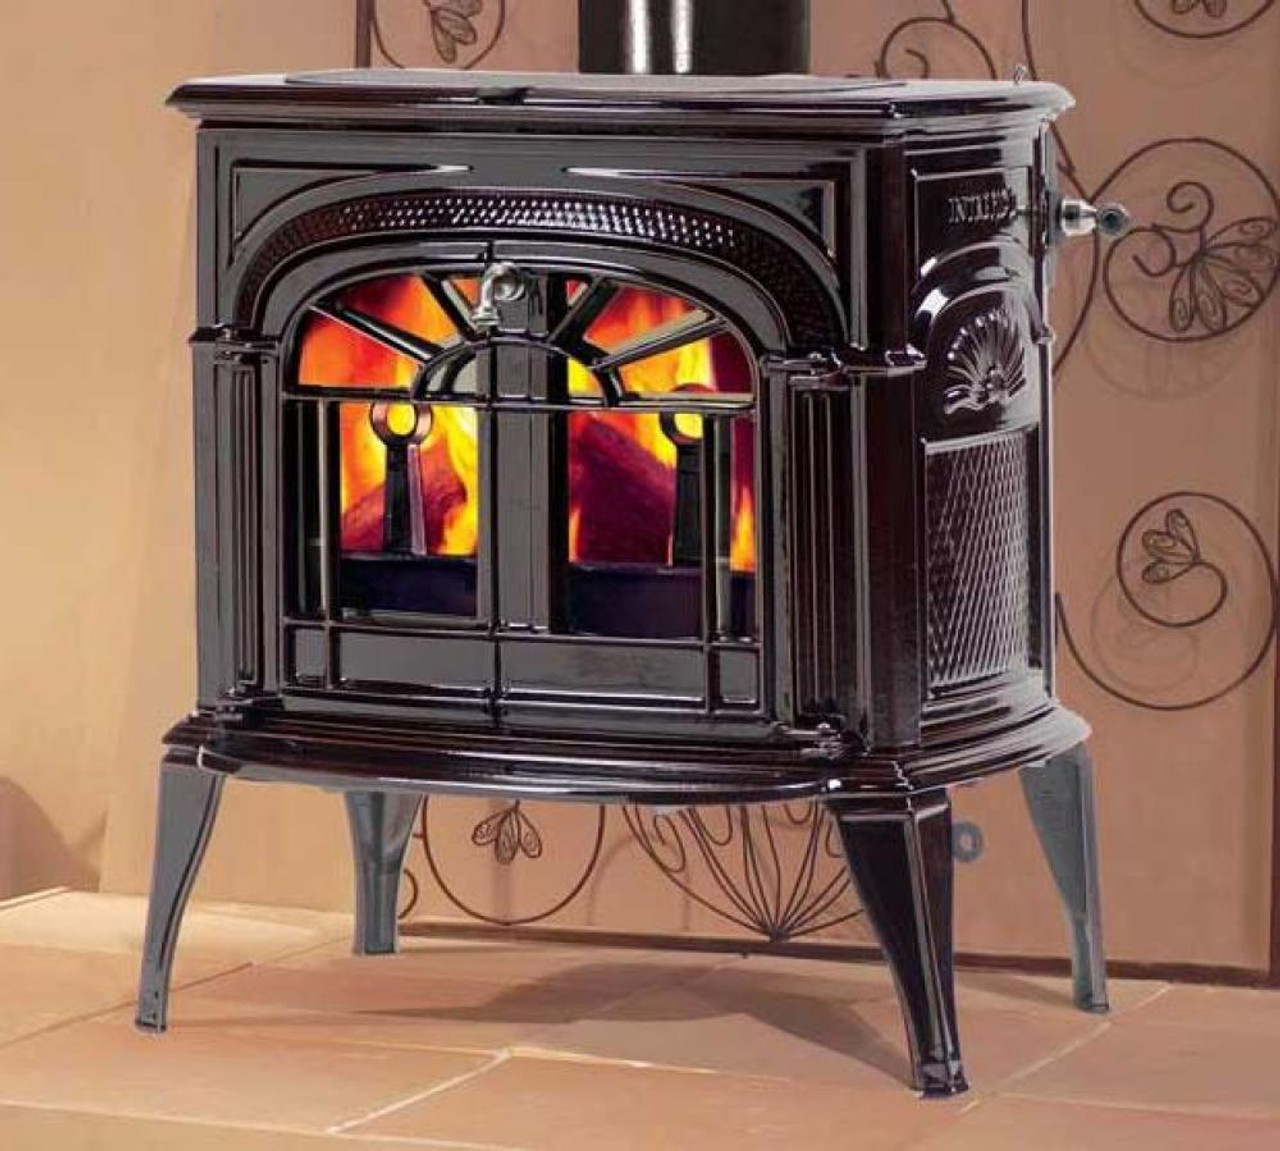 hight resolution of vermont castings intrepid direct vent gas stove embers fireplaces outdoor living